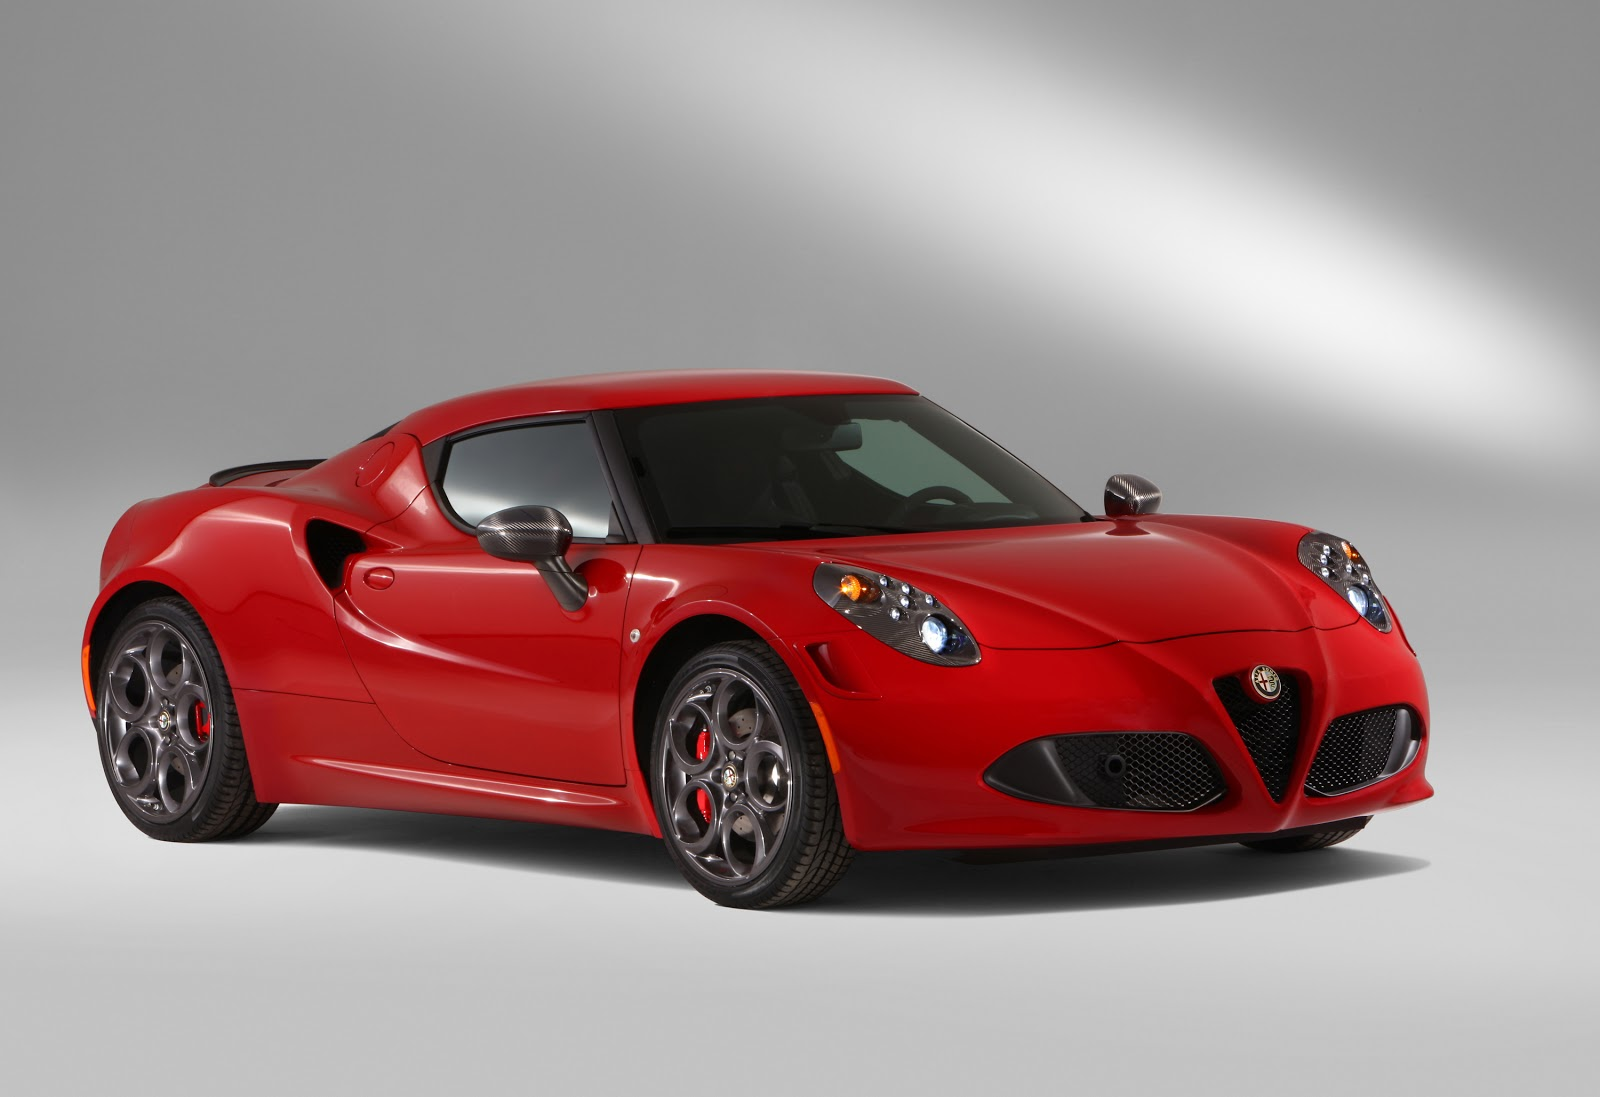 News Alfa Romeo 4c Dynamic Debut Goodwood Fos Magazines The Will Make Its At 2013 Festival Of Speed 12 14 July Exclusive Launch Edition Compact Supercar